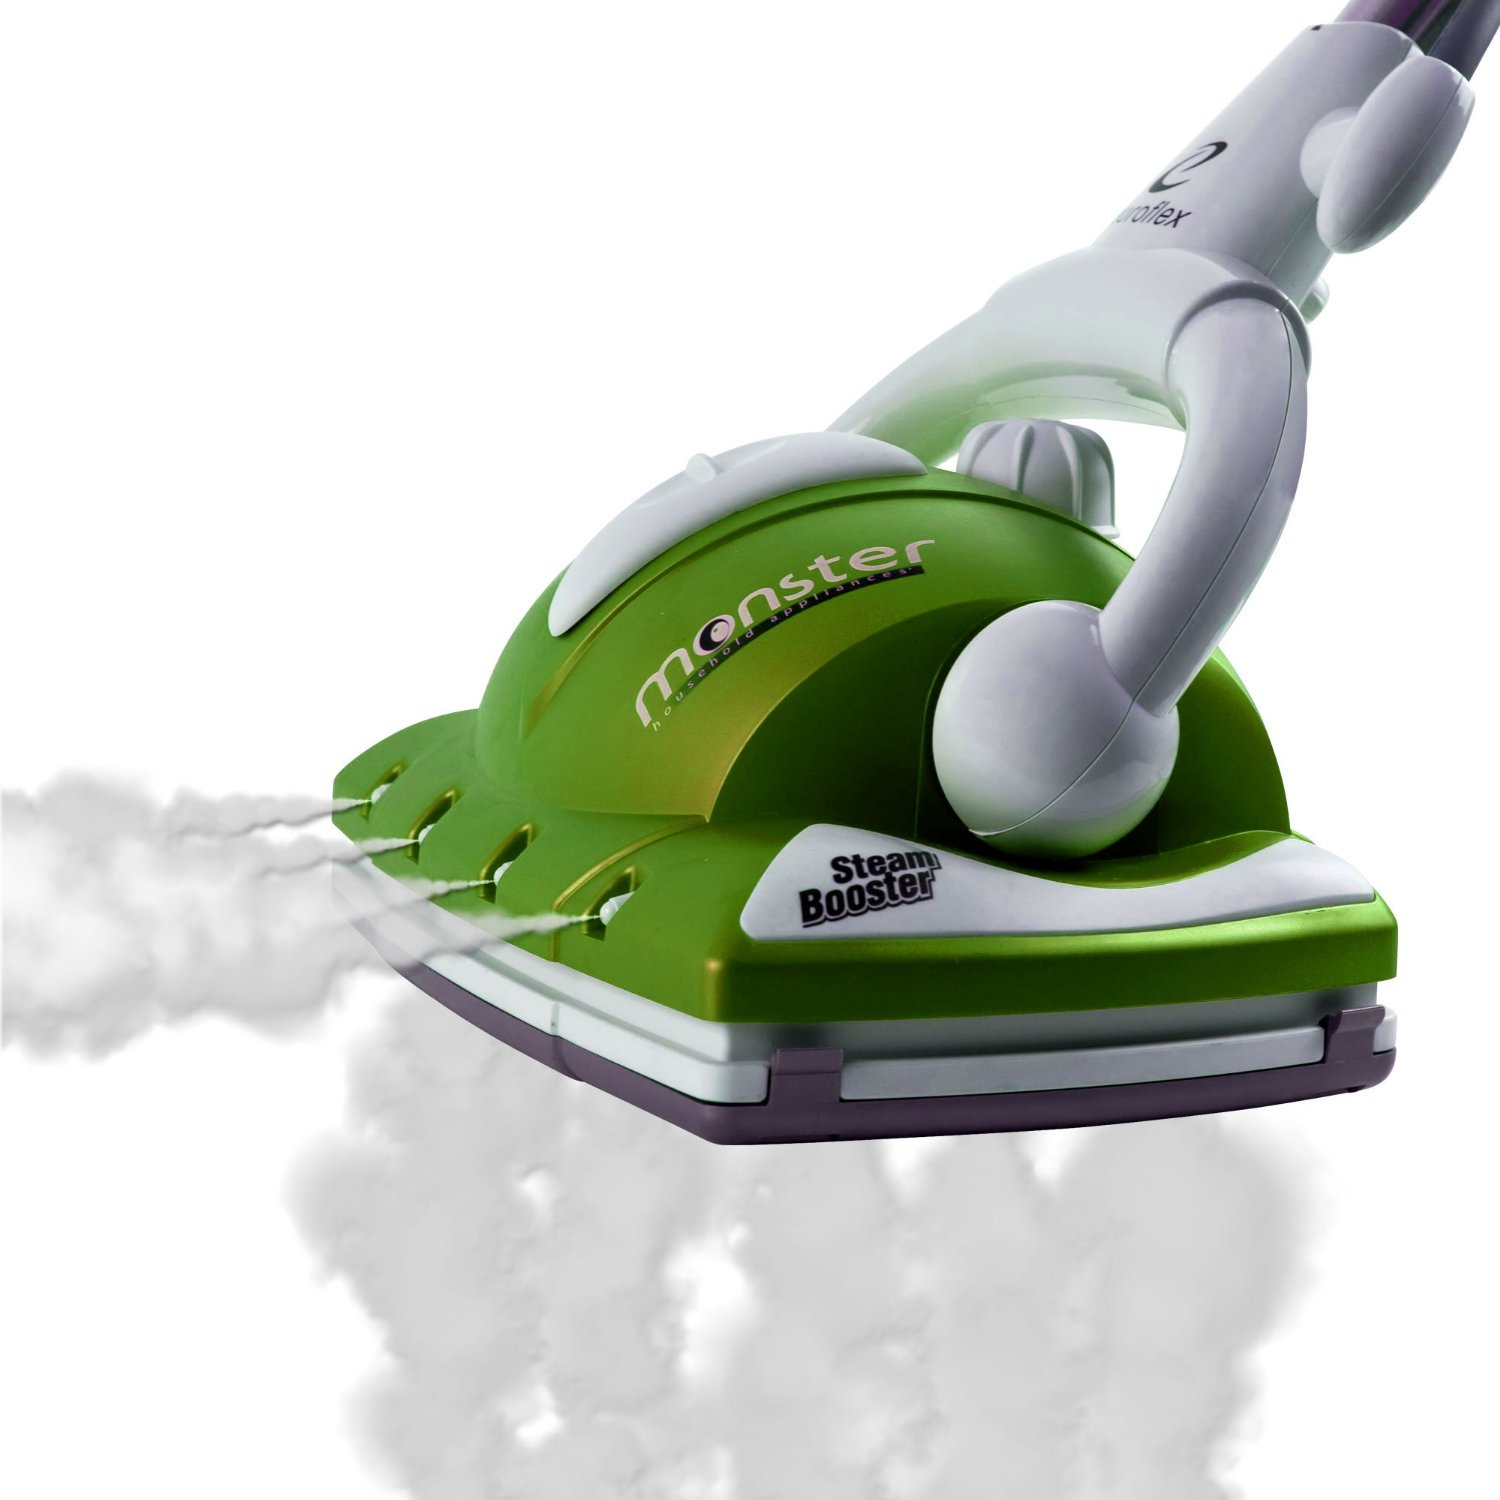 Steam Cleaner for Wood Floors 2015 - Steam Cleanery